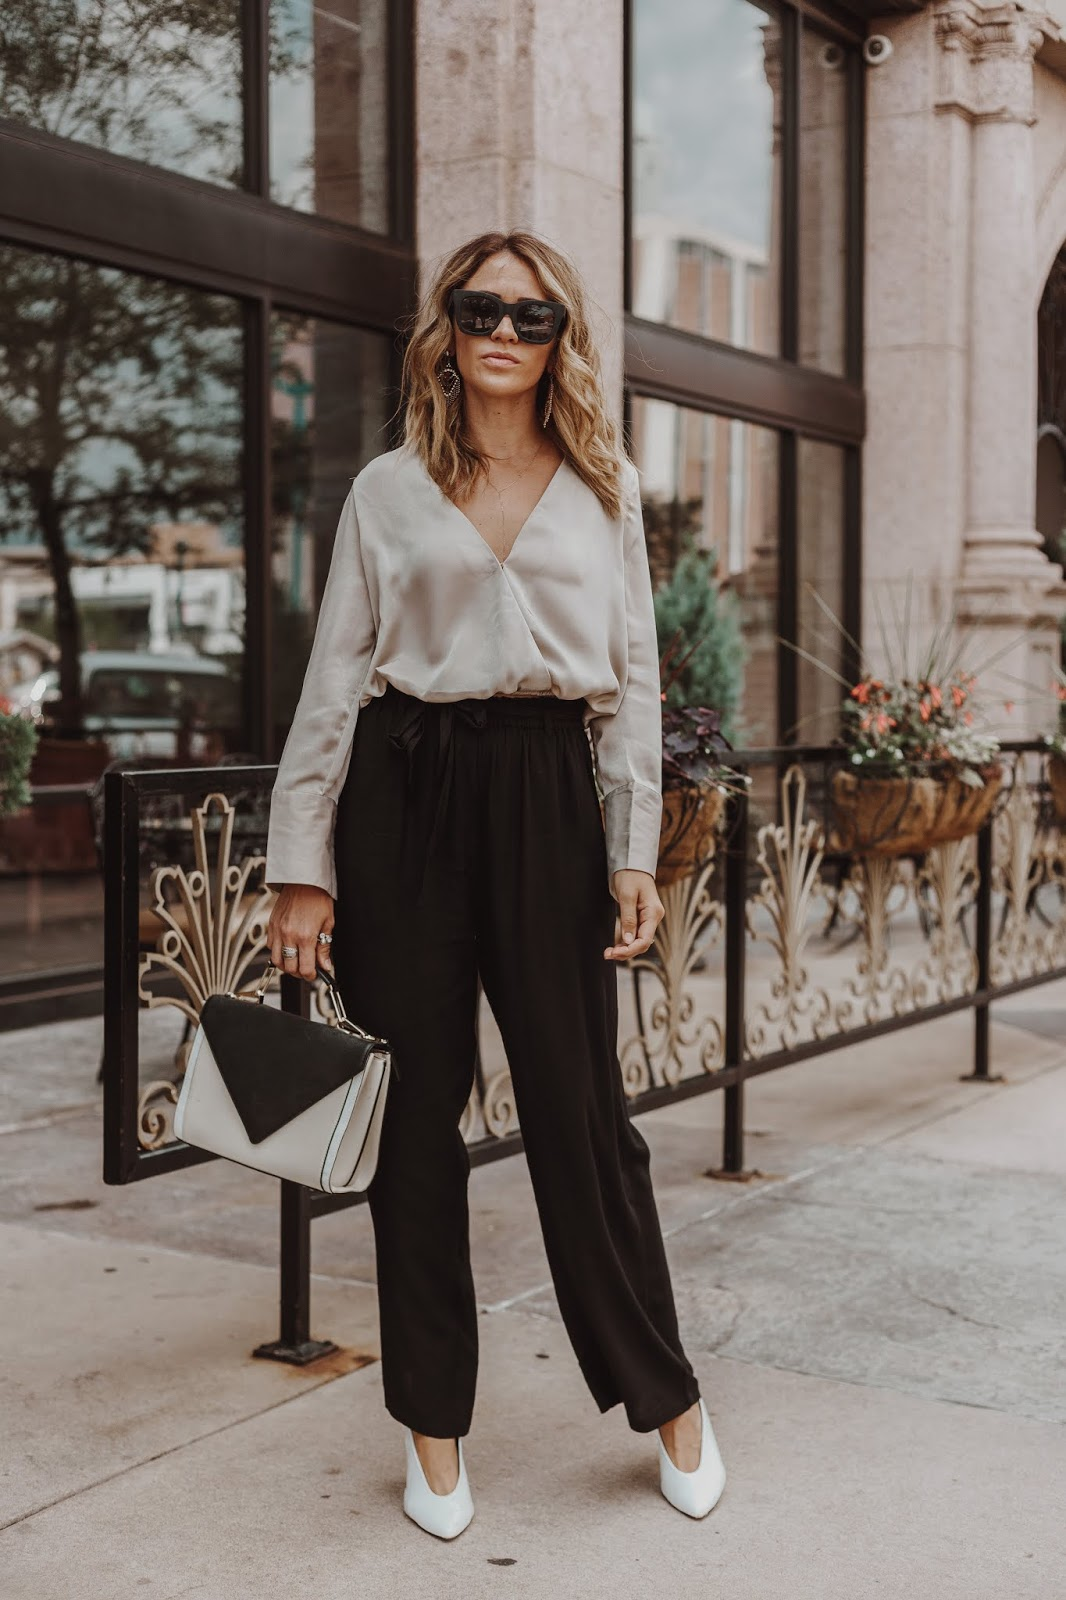 d6262708b3e45 What To Wear To An Office Dinner Party - Leah Behr